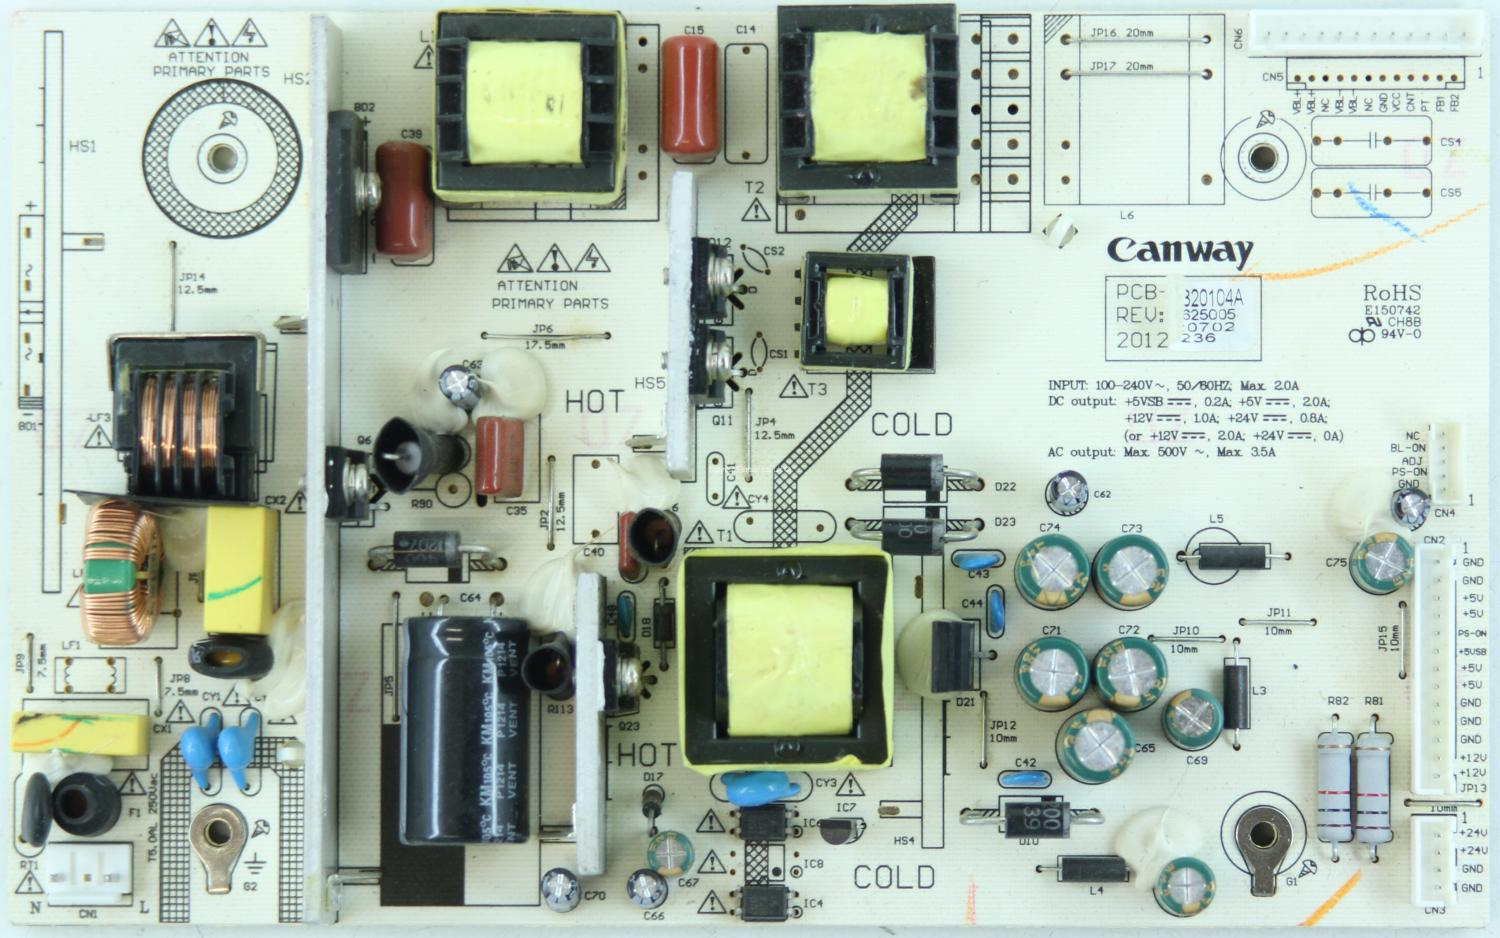 Cello C32119F - PSU - PCB-012 - REV:1.2 - KW-PIV320104A - ZL120625005 - 20120702